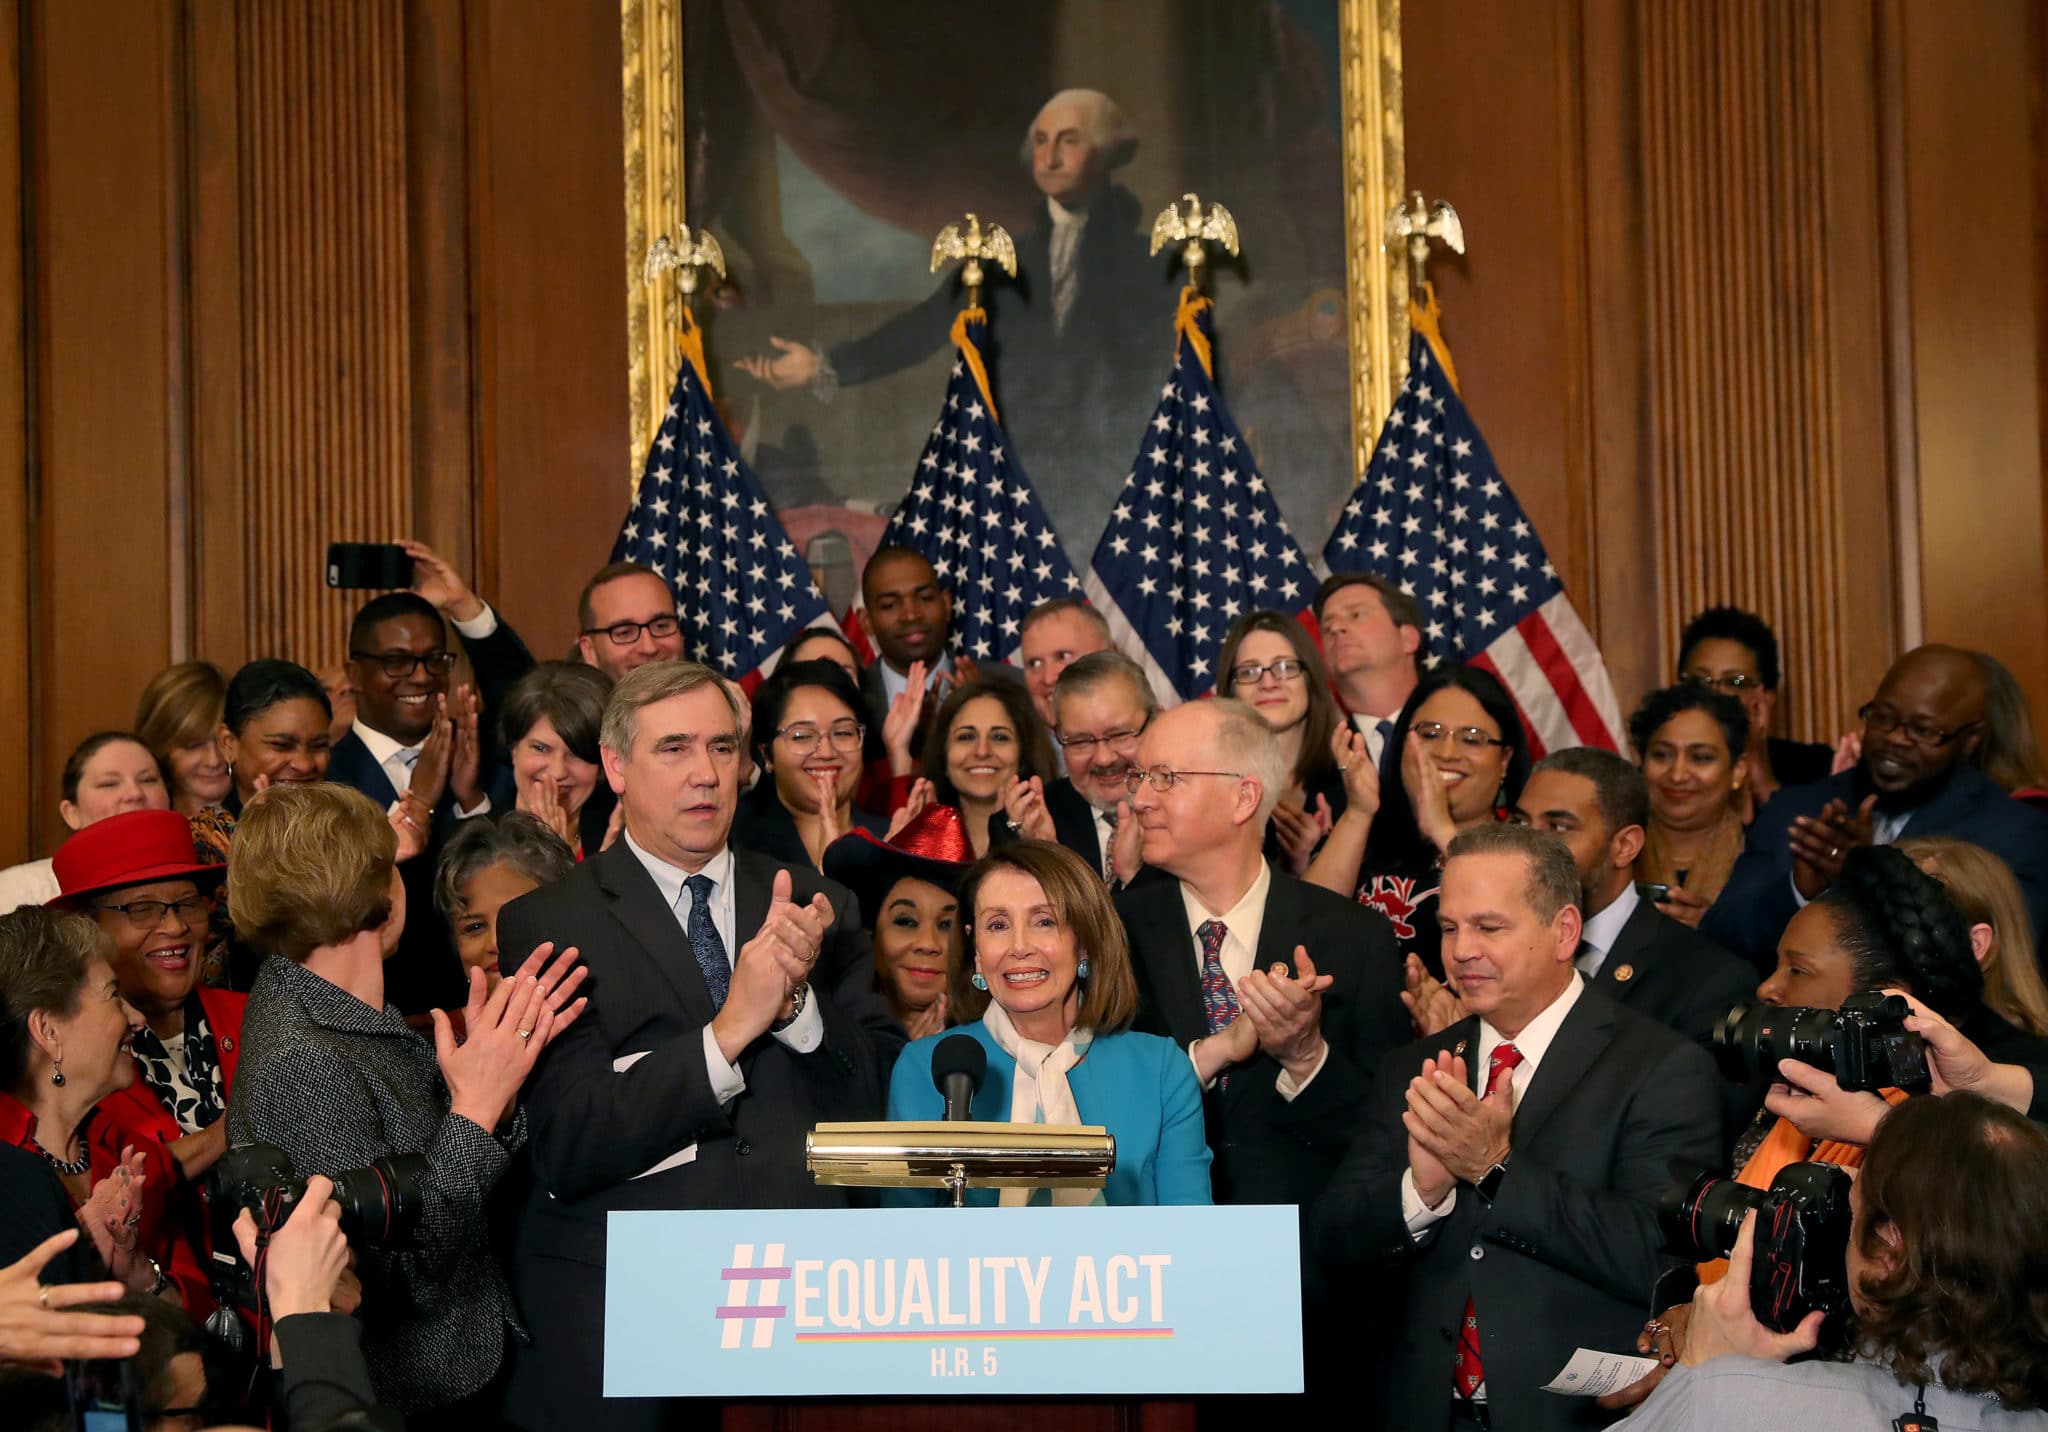 House Speaker Nancy Pelosi speaks during a 2019 news conference where House and Senate Democrats introduced the Equality Act